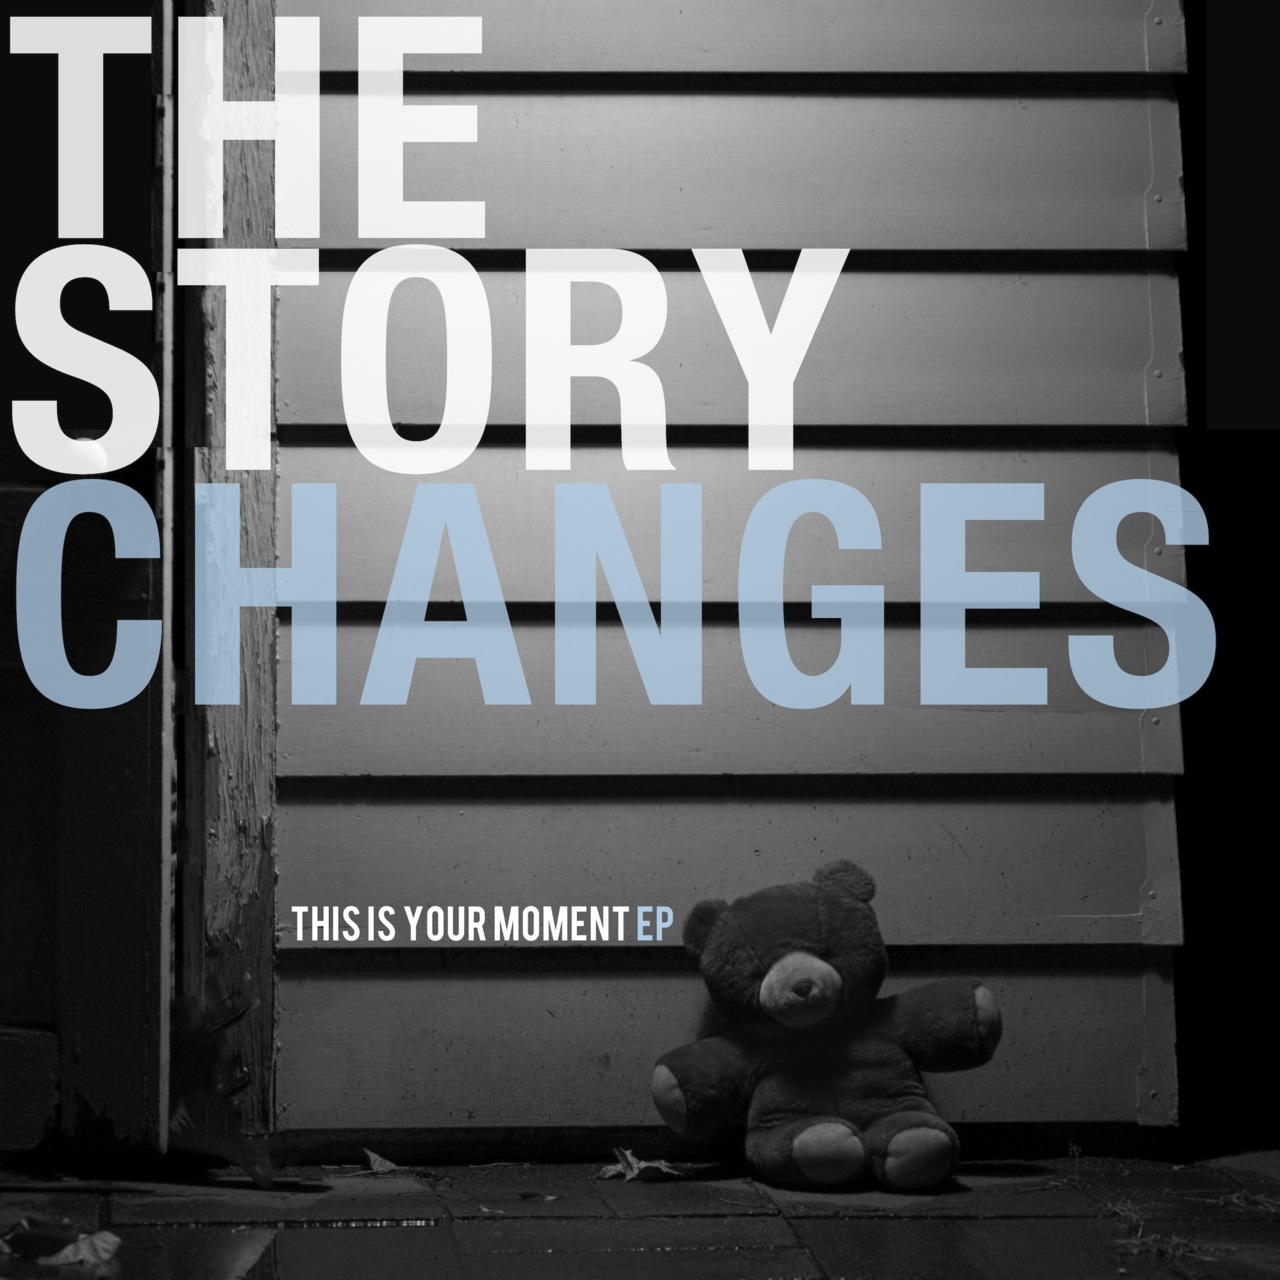 "tipsound :      The Story Changes -  This Is Your Moment  EP     Album Review    The Story Changes keeps doing what they are good at: playing good music. This two man band sound so much bigger than what they seem. McMillon's vocals are poignant, classic punk, perfectly in synch with the lyrics. This time The Story is pushing the boundaries, they are taking it further, their sound is more defined. The guitar has a 'push-and-pull' sound (""Worlds Collide""). Together with the beats Poppy lays out, each song drives your feet off of the ground. The opening track ""Tidal Wave"" creeps up onto you, slowly making its way into your chest, sparking something inside, starting the mood for the record. ""How Long"" sounds like a song from the underground punk scene of the late 90s, while ""Breed"" is a combination of Nirvana's ""Polly"" and a much faster Promise Ring.  This Is Your Moment  is the first vinyl release for The Story Changes, the choice could not have been better. This record doesn't even feel like an EP, once you're done listening, you will go back and give it another listen, over and over again.   Head over to  TheStoryChanges.com  to pre-order  This Is Your Moment  and check them out on  Facebook  and  Twitter ."